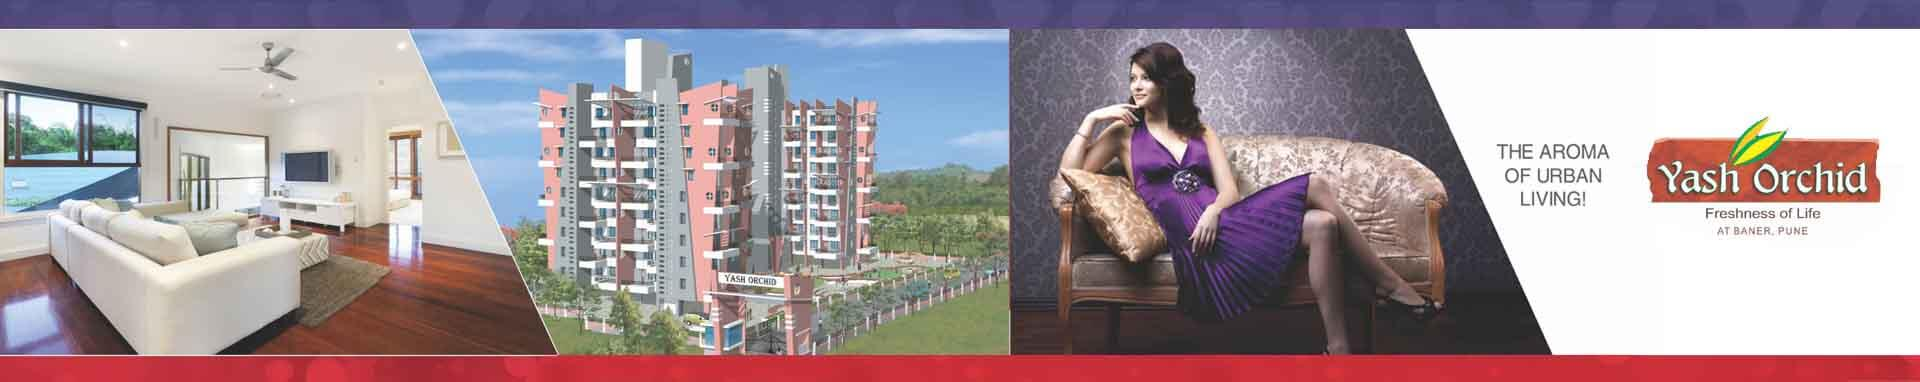 yash-orchid-baner-pune-credai-pune-metro-inside-page-banner